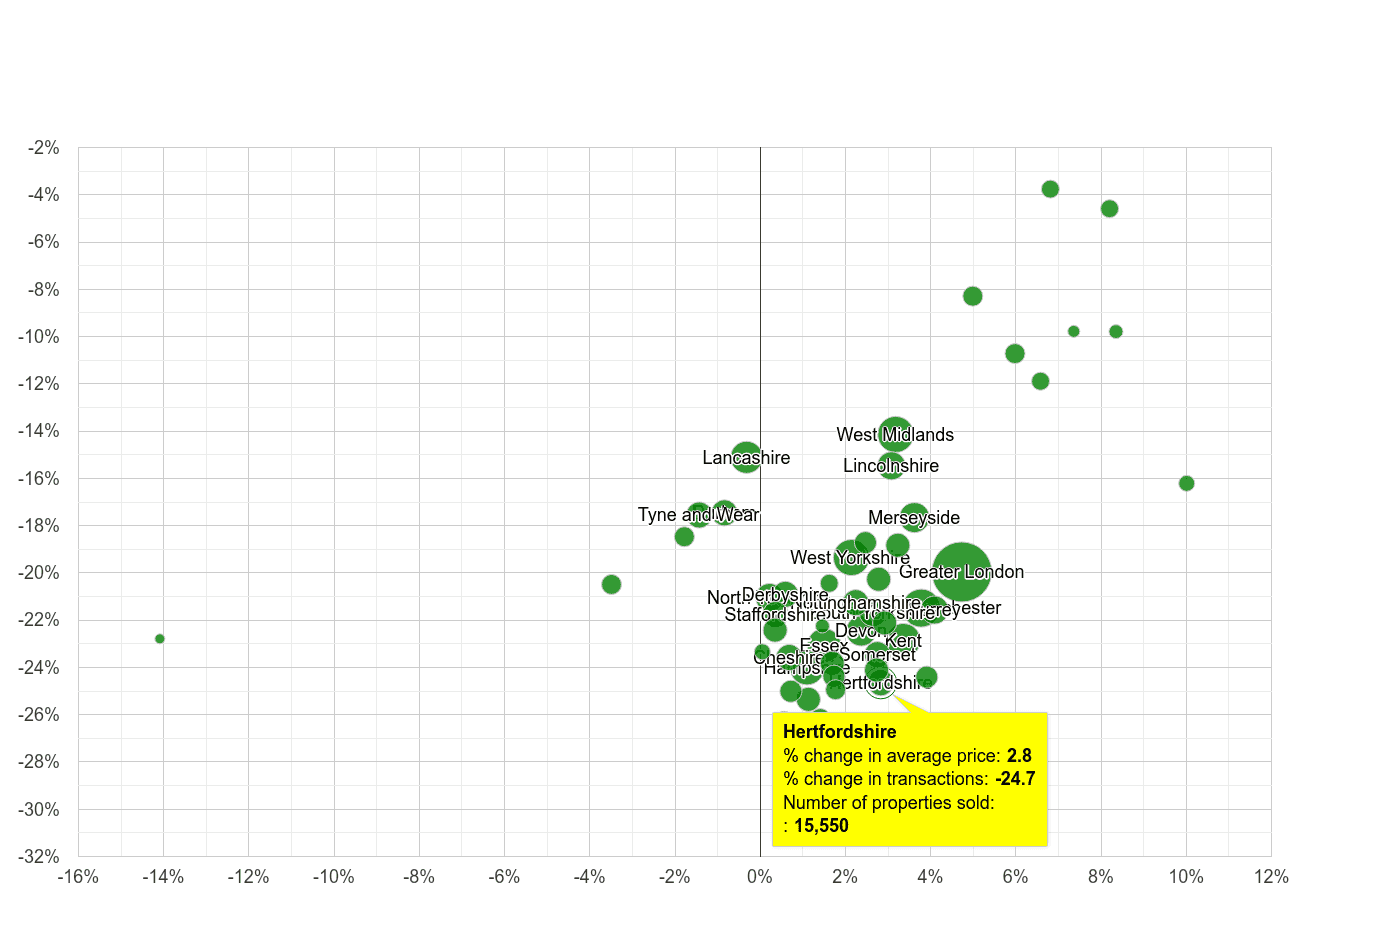 Hertfordshire property price and sales volume change relative to other counties